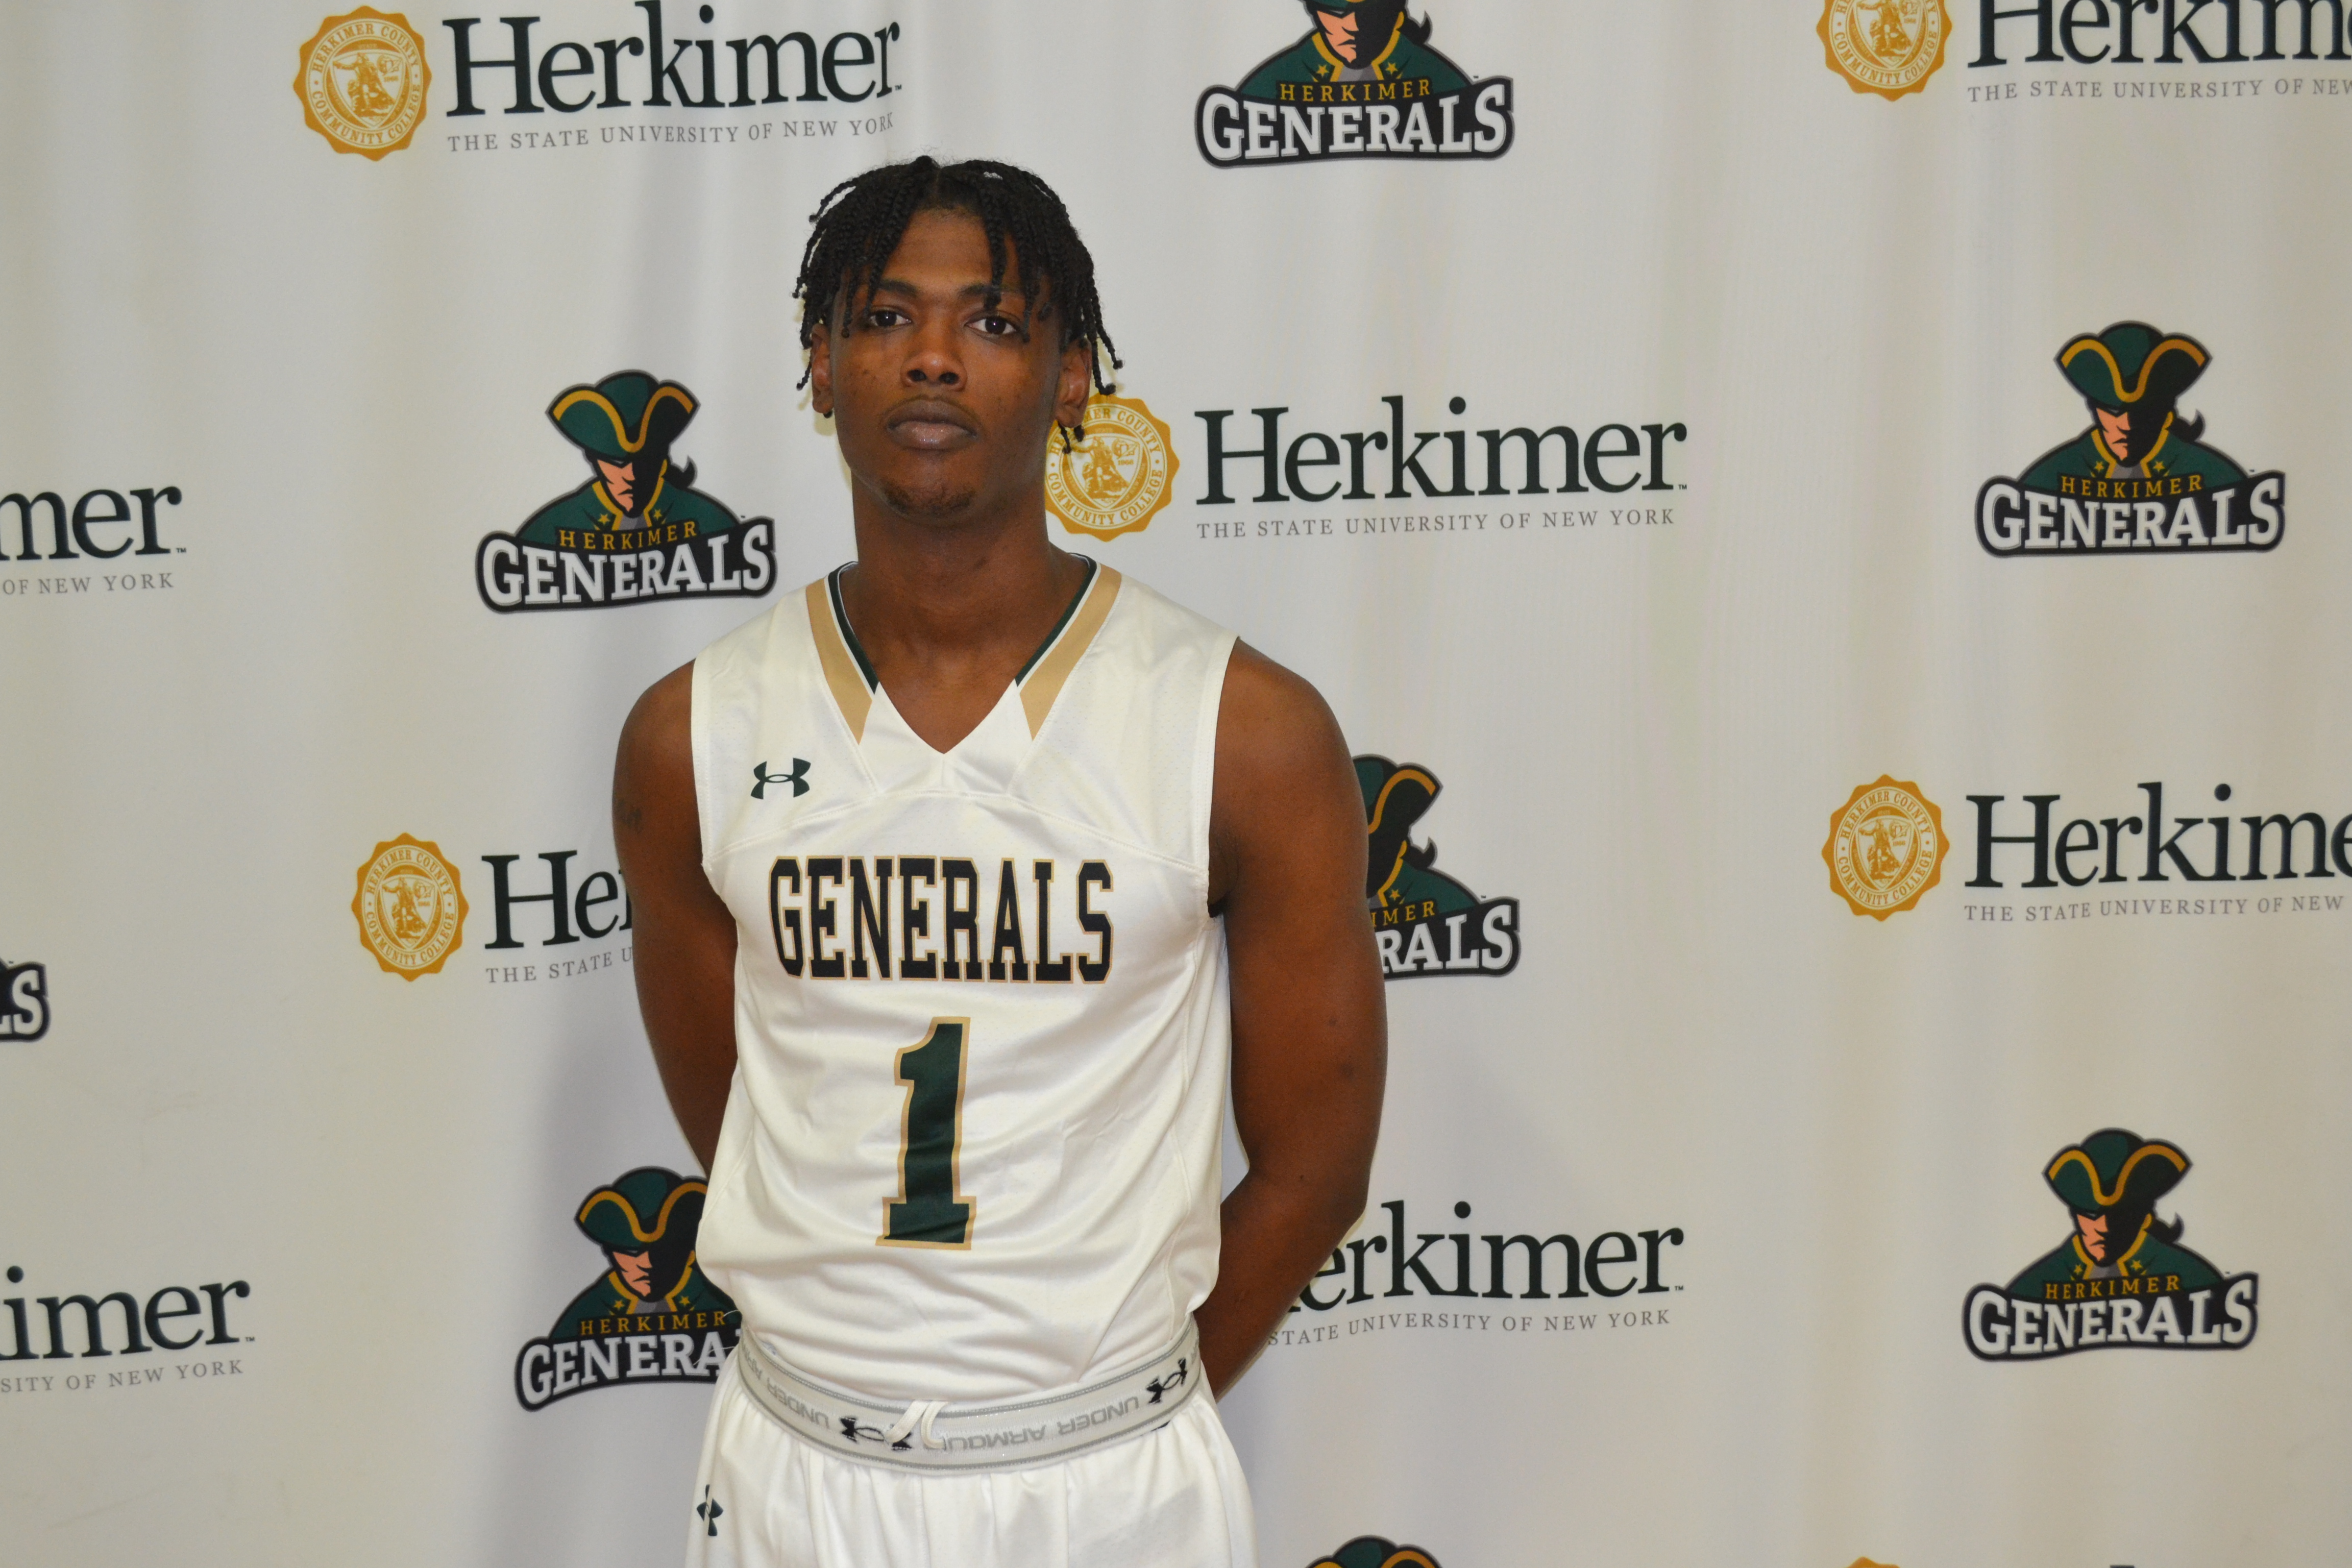 Teshaun Beckles Basketball Pic